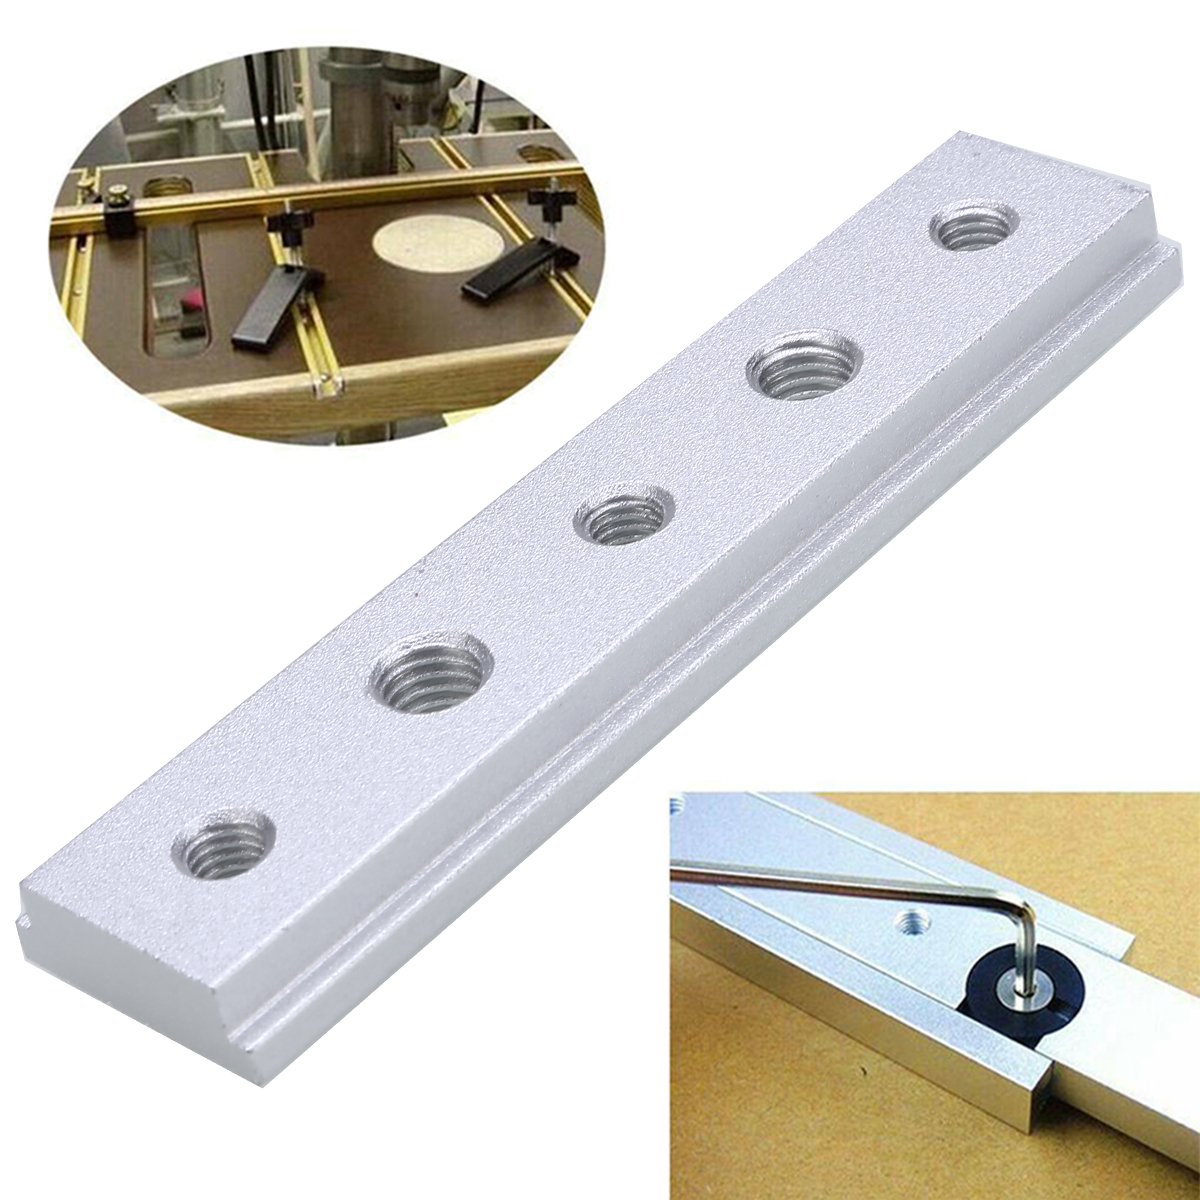 1pcs <font><b>T</b></font> Slot <font><b>Track</b></font> <font><b>Aluminum</b></font> Slot Miter <font><b>Track</b></font> Jig Fixture for Router Table Bandsaws Woodworking Tool 100mm Length image